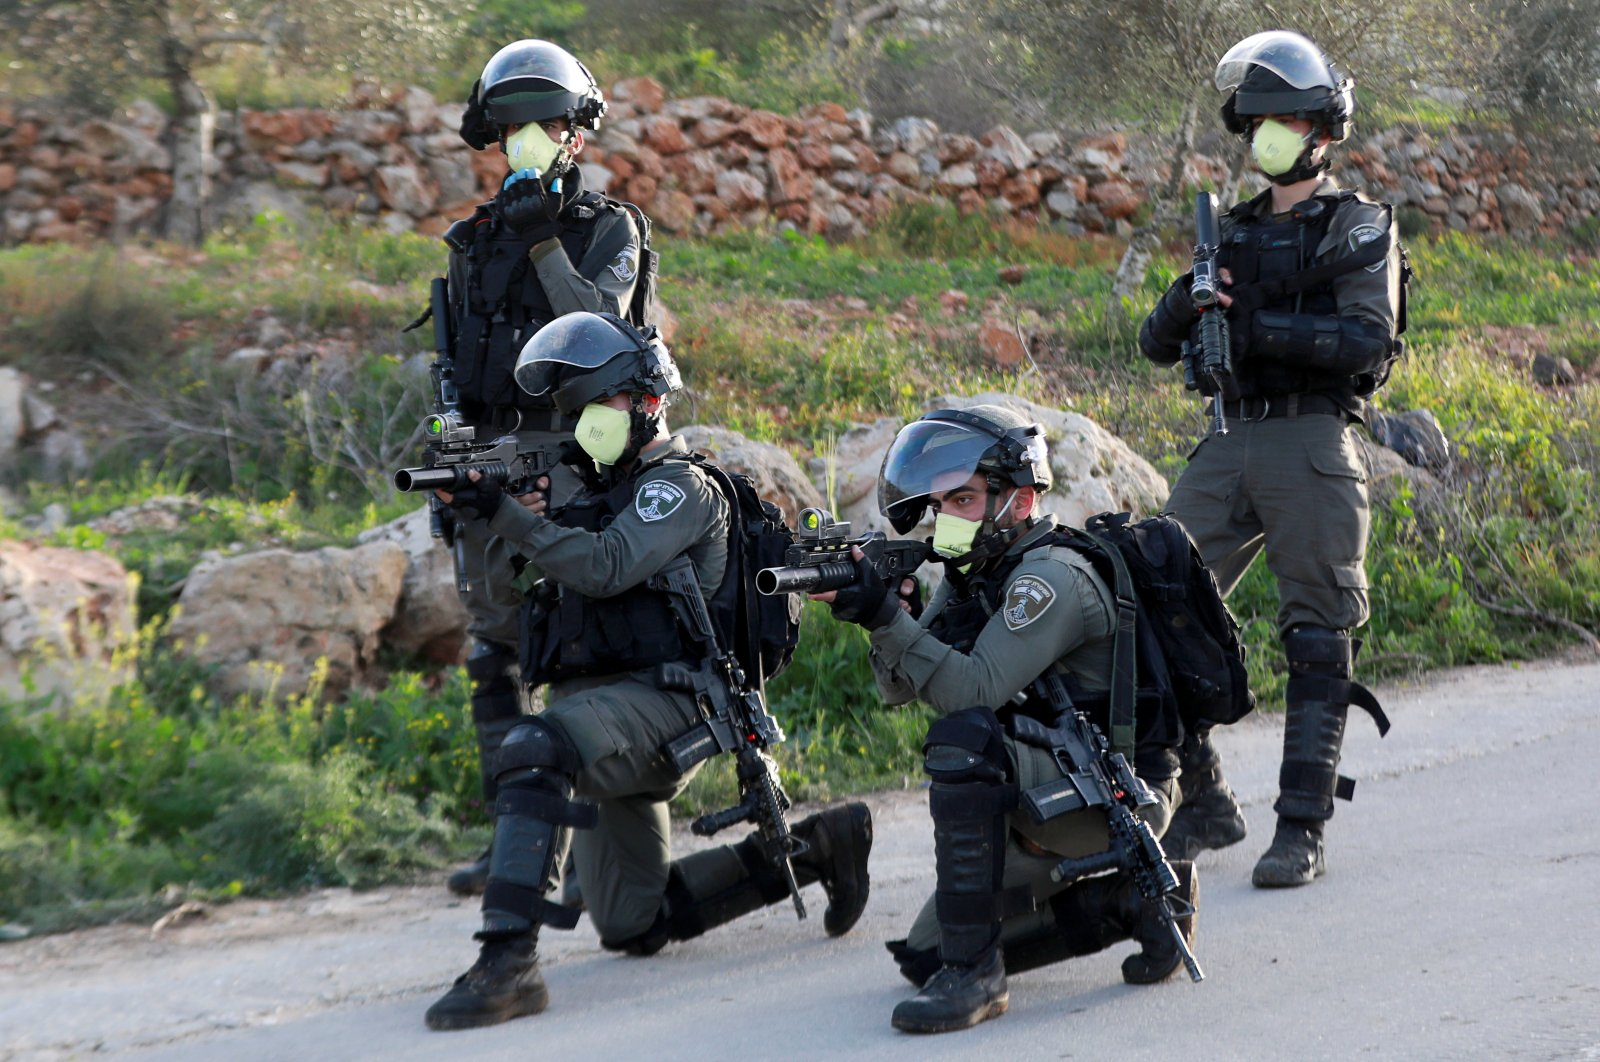 Israeli border police wearing masks aim their weapons during a Palestinian protest against Israeli settlements, near the town of Beita in the Israeli-occupied West Bank, March 11, 2020. (Reuters Photo)